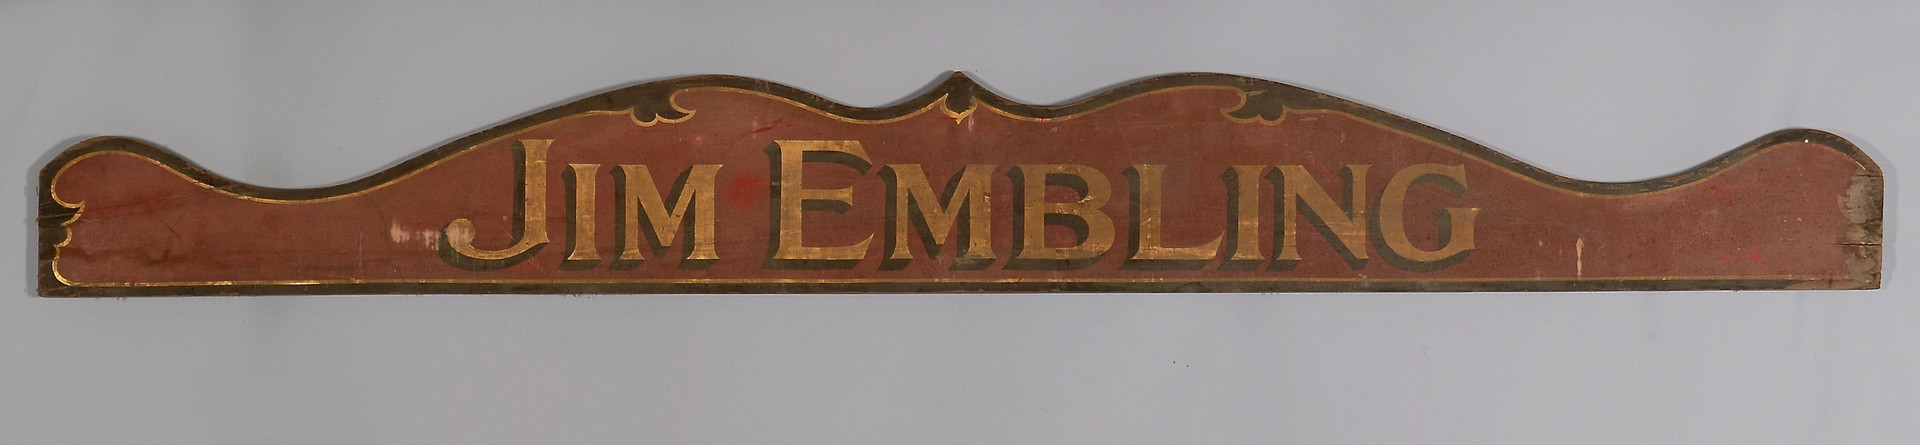 Lot 685: Monumental Chocolate Trade Sign